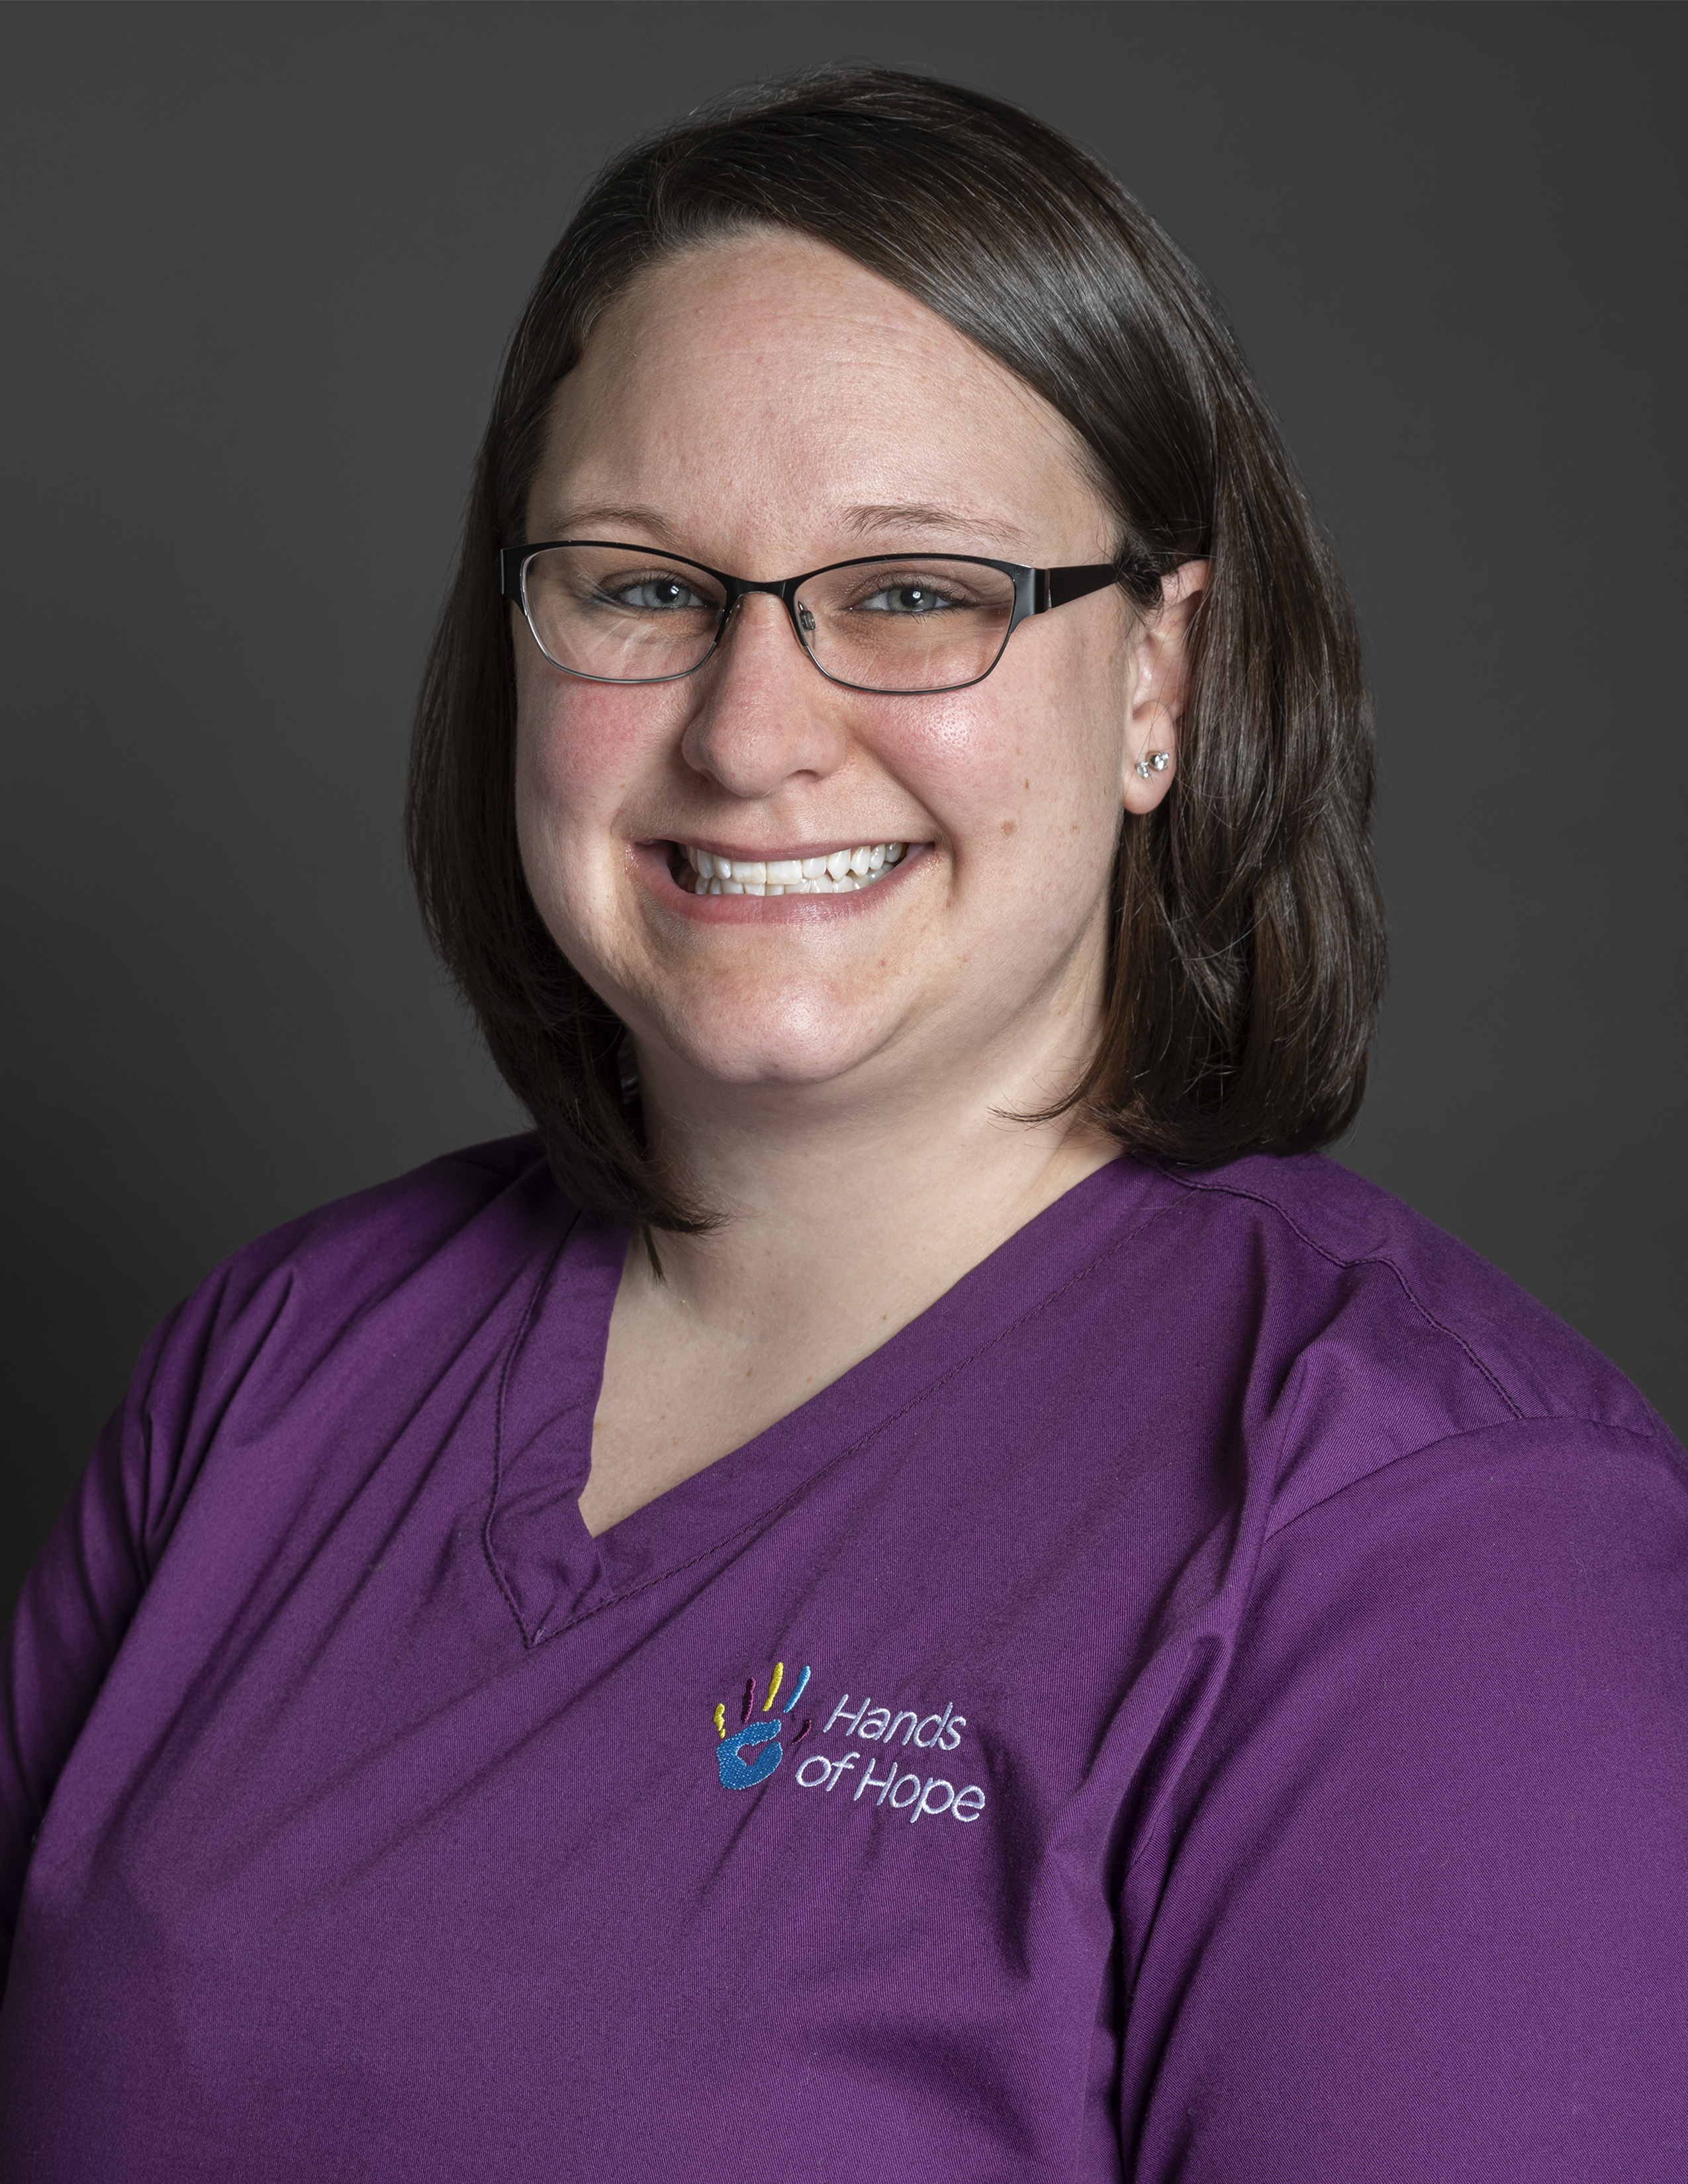 Amber Couch, RN, ADN, Hands of Hope